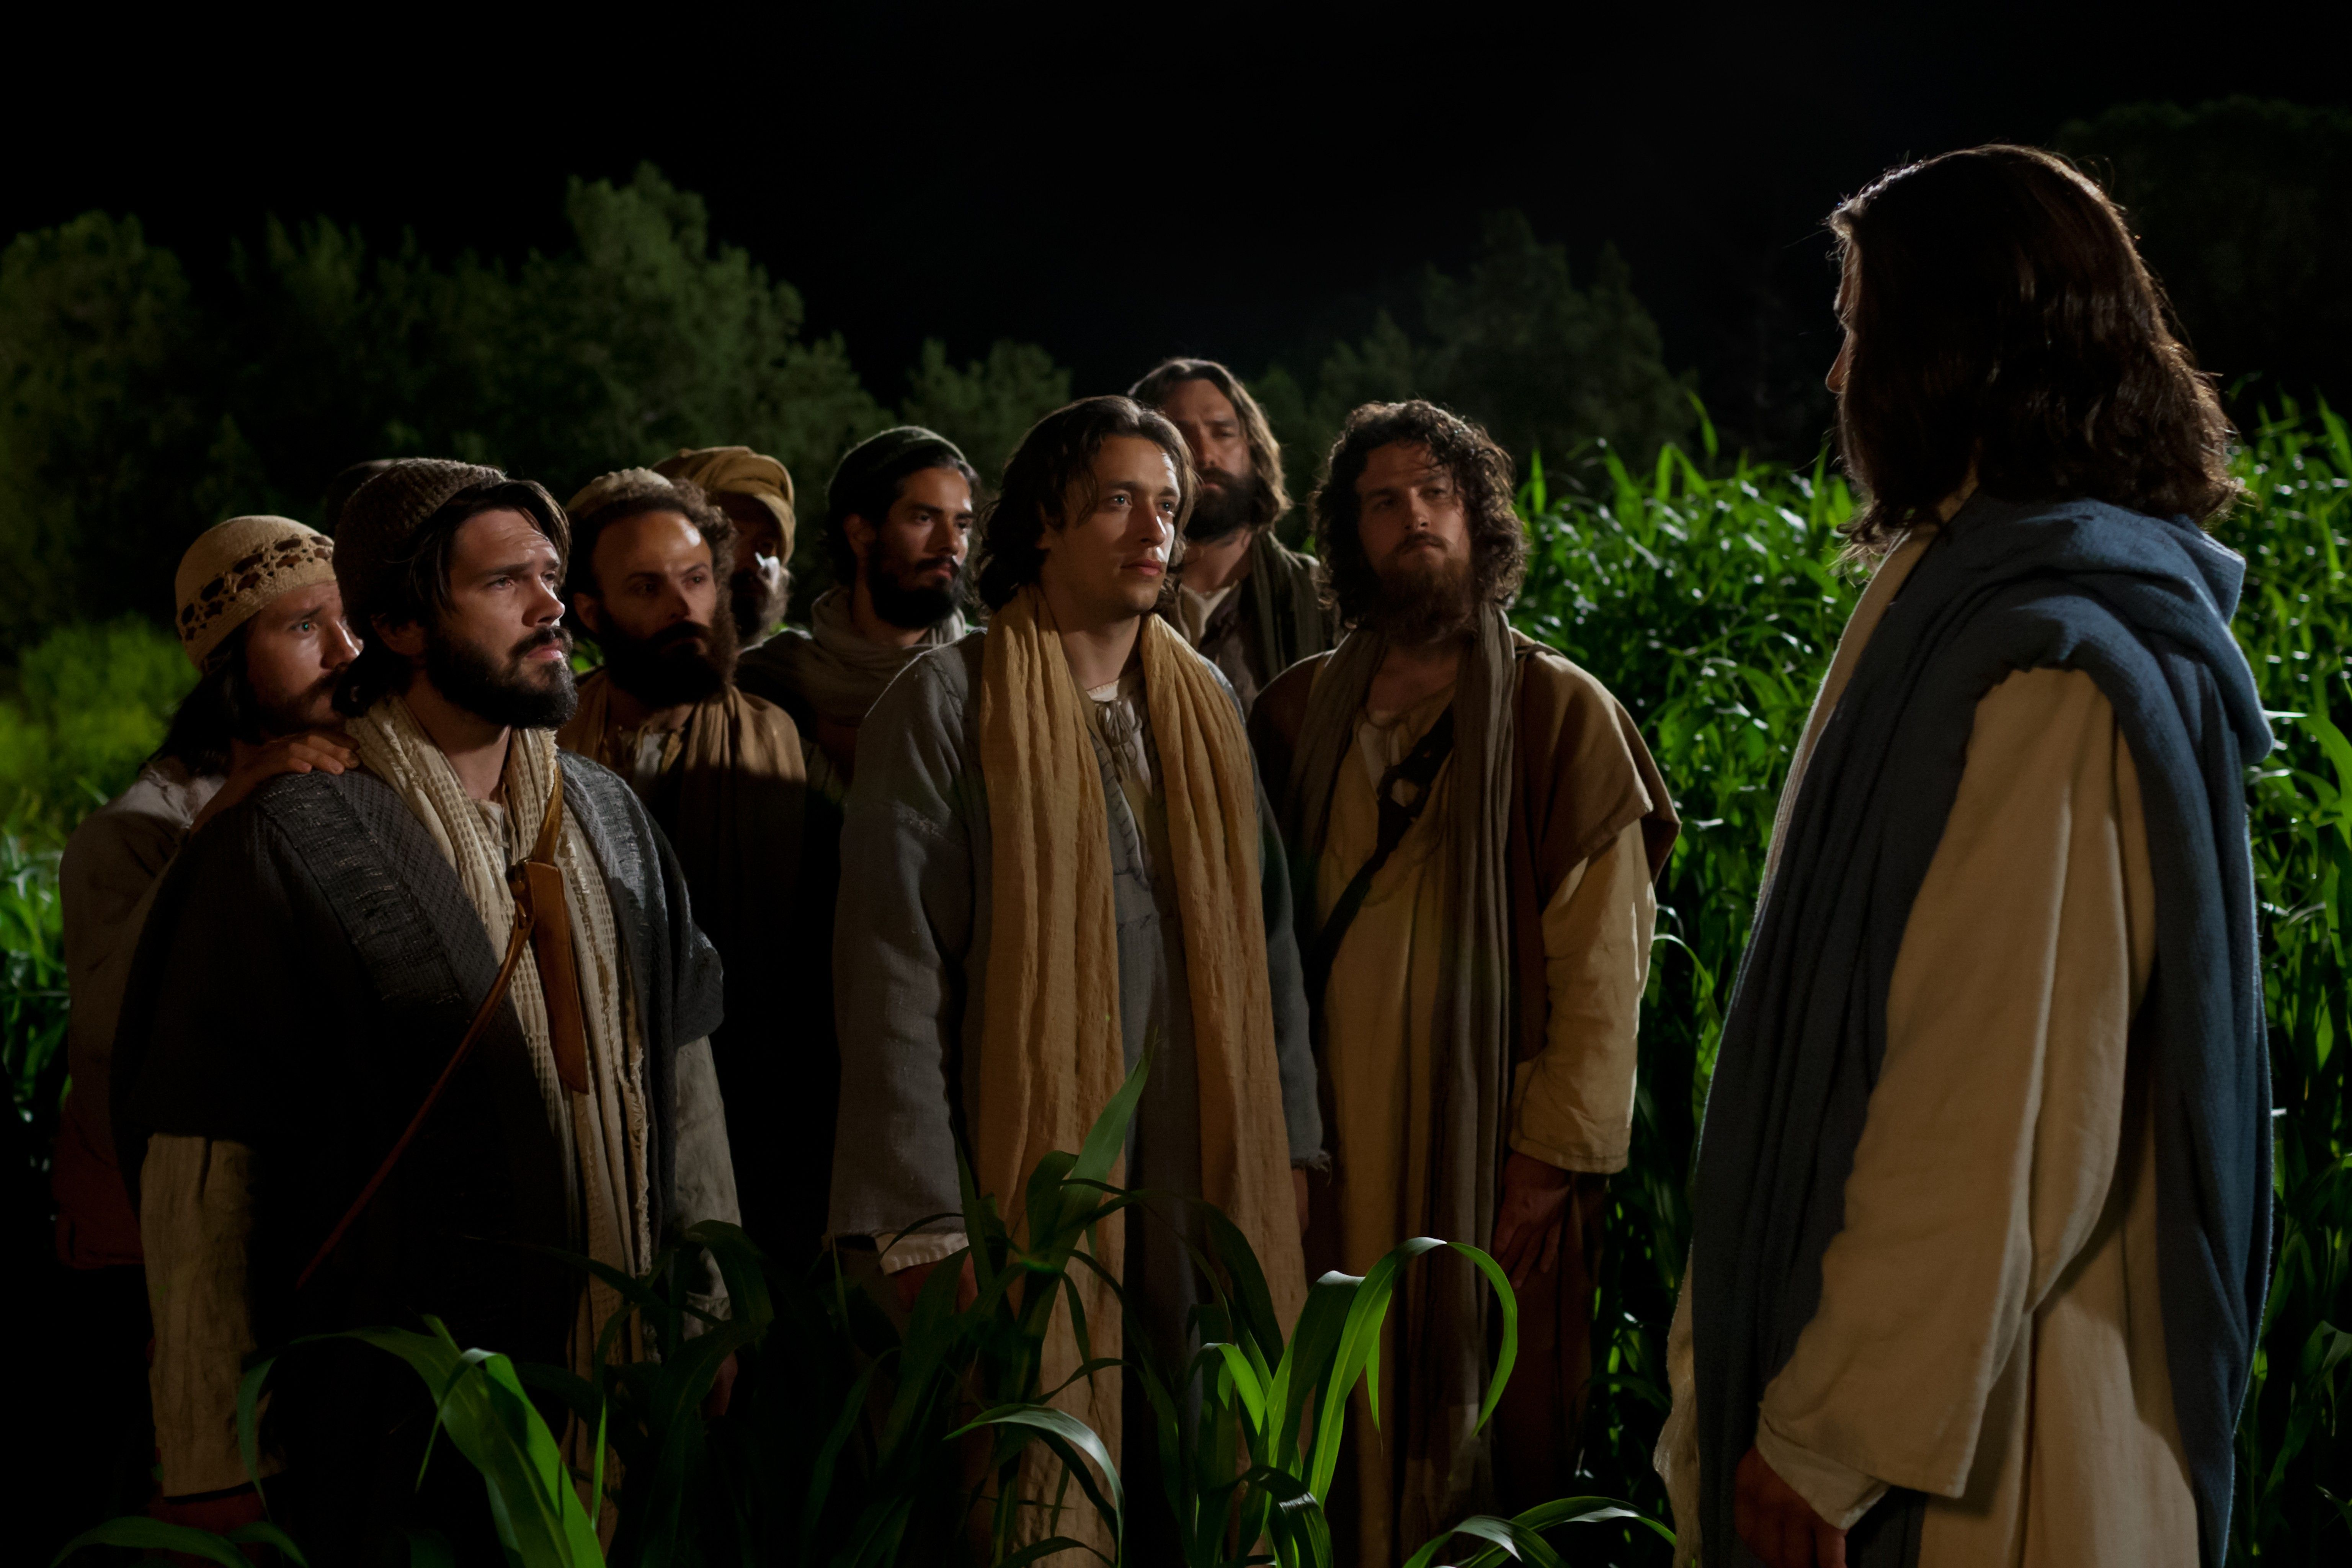 Jesus talking to the eleven disciples at night.